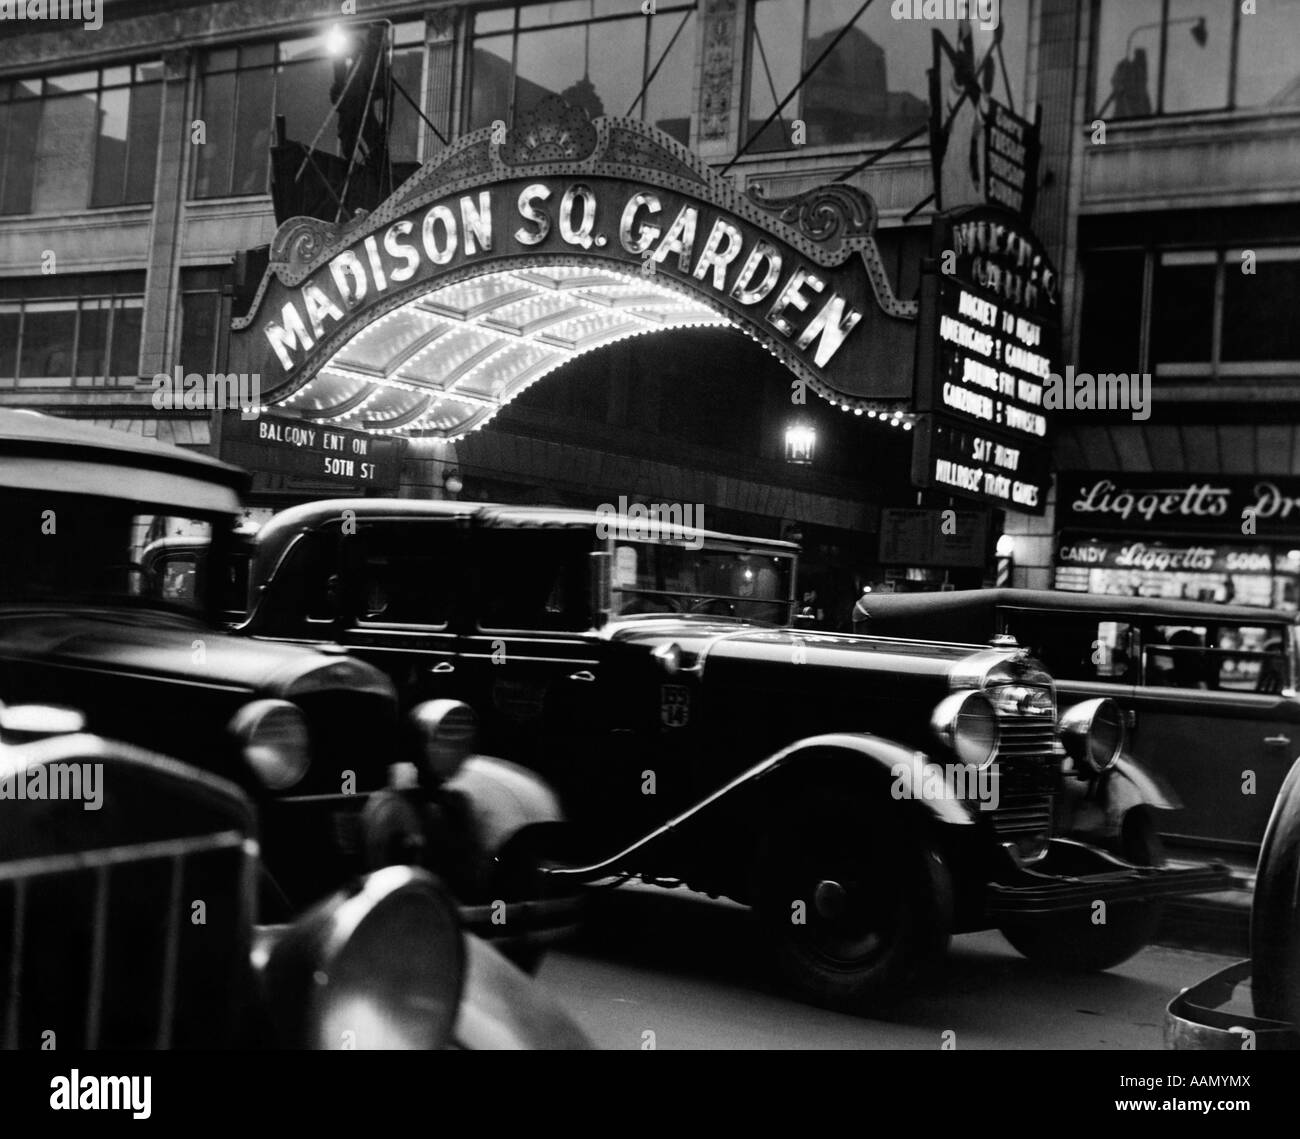 1920s 1930s CARS TAXIS MADISON SQUARE GARDEN MARQUEE AT